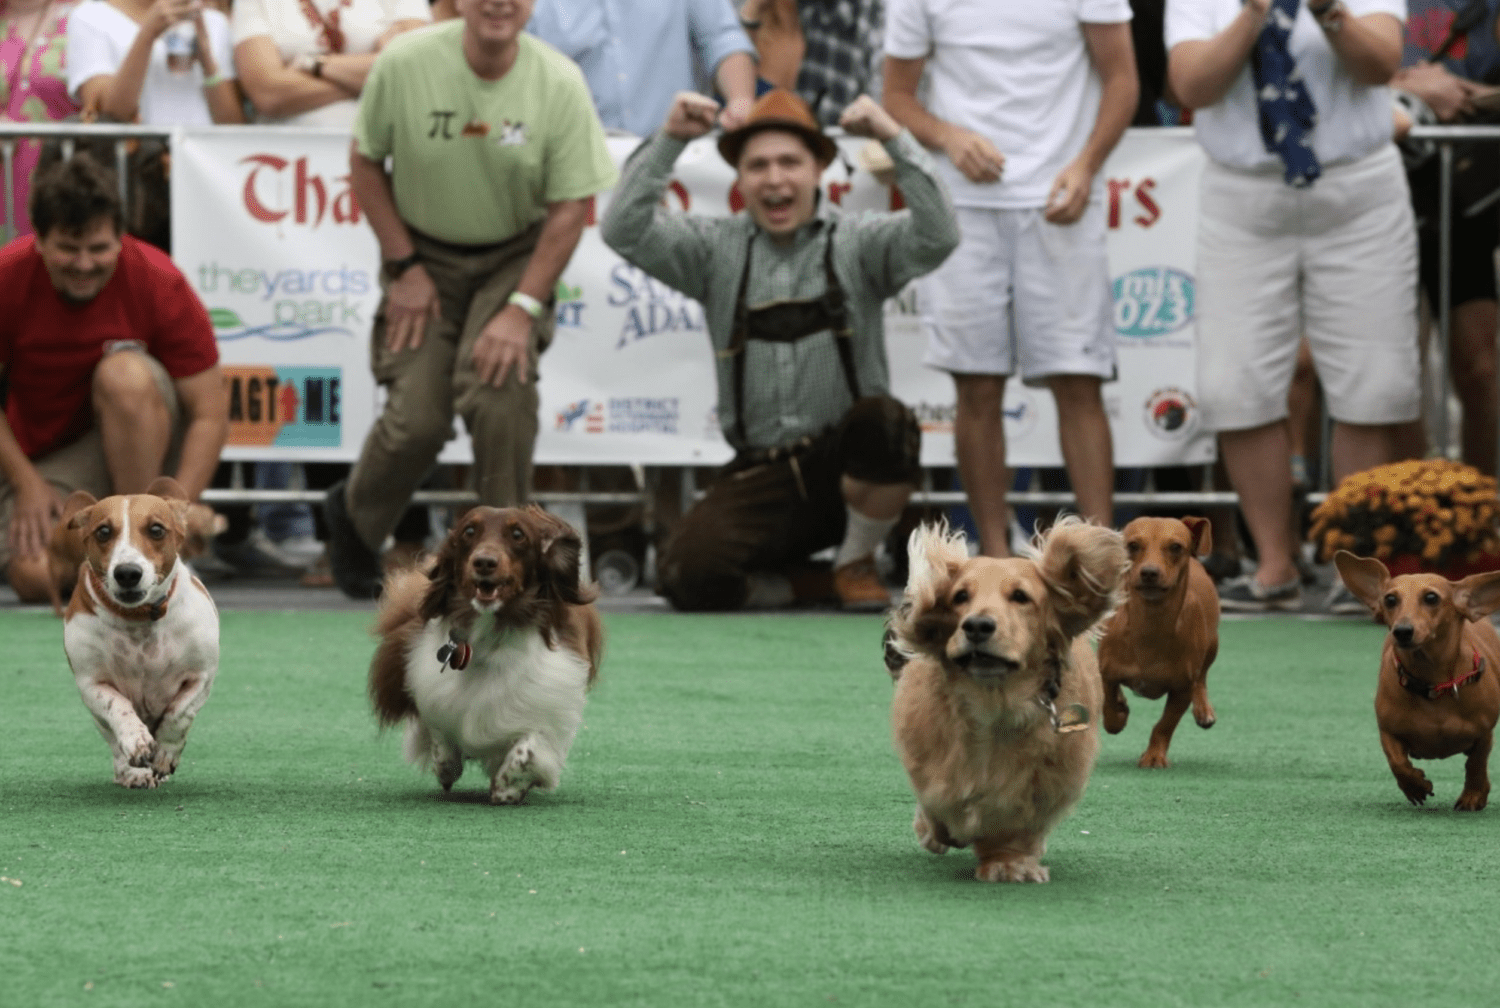 Dachsunds competing in Oktoberfest dog race event